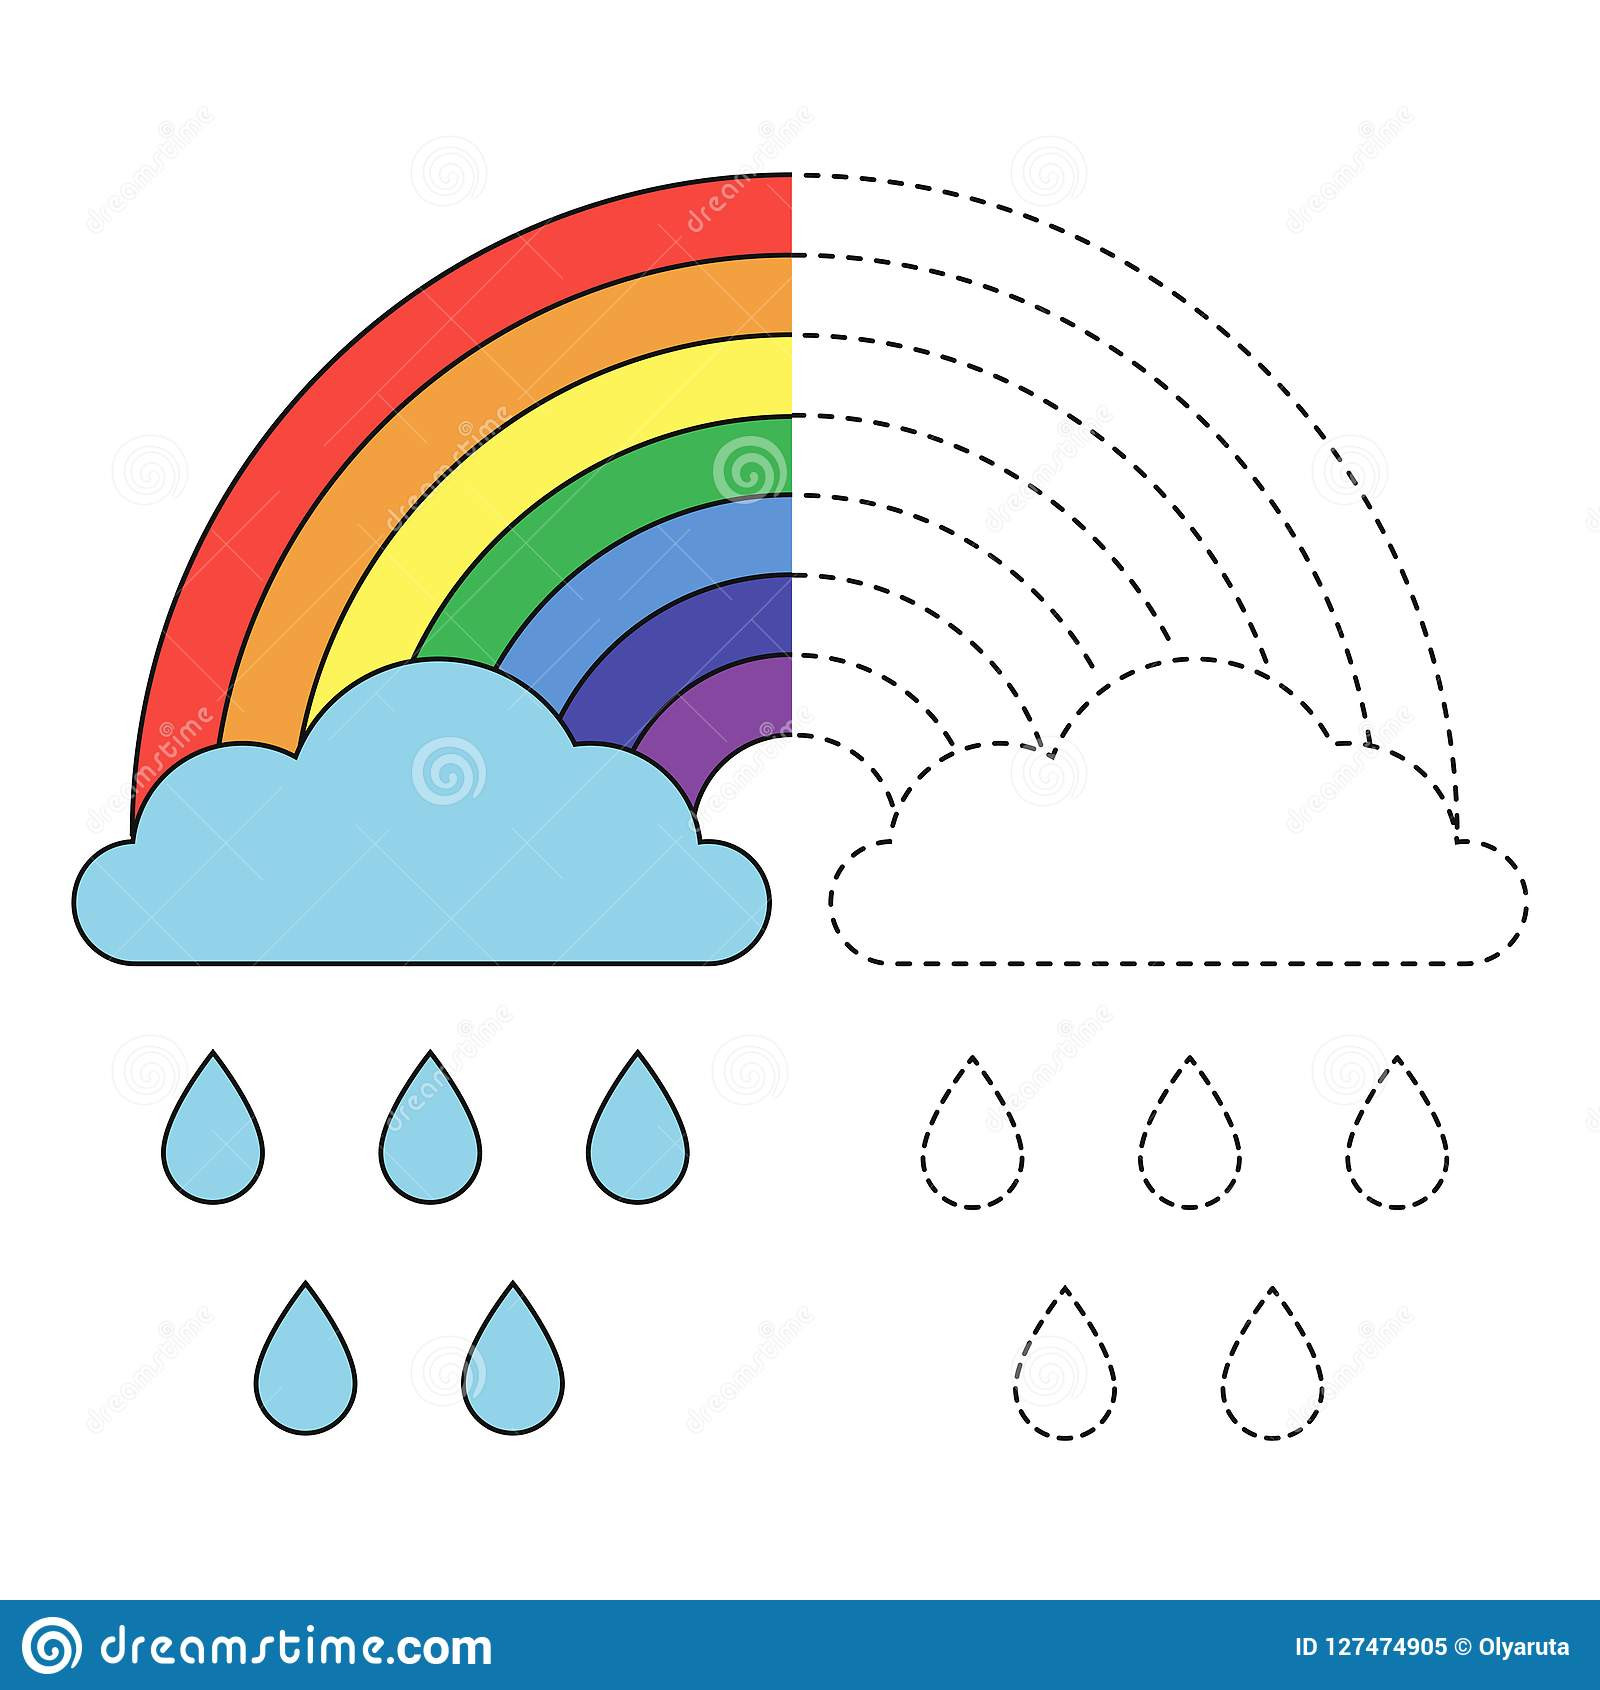 Rainbow Worksheets Preschool Illustration Rainbow Clouds and Raindrops for toddlers